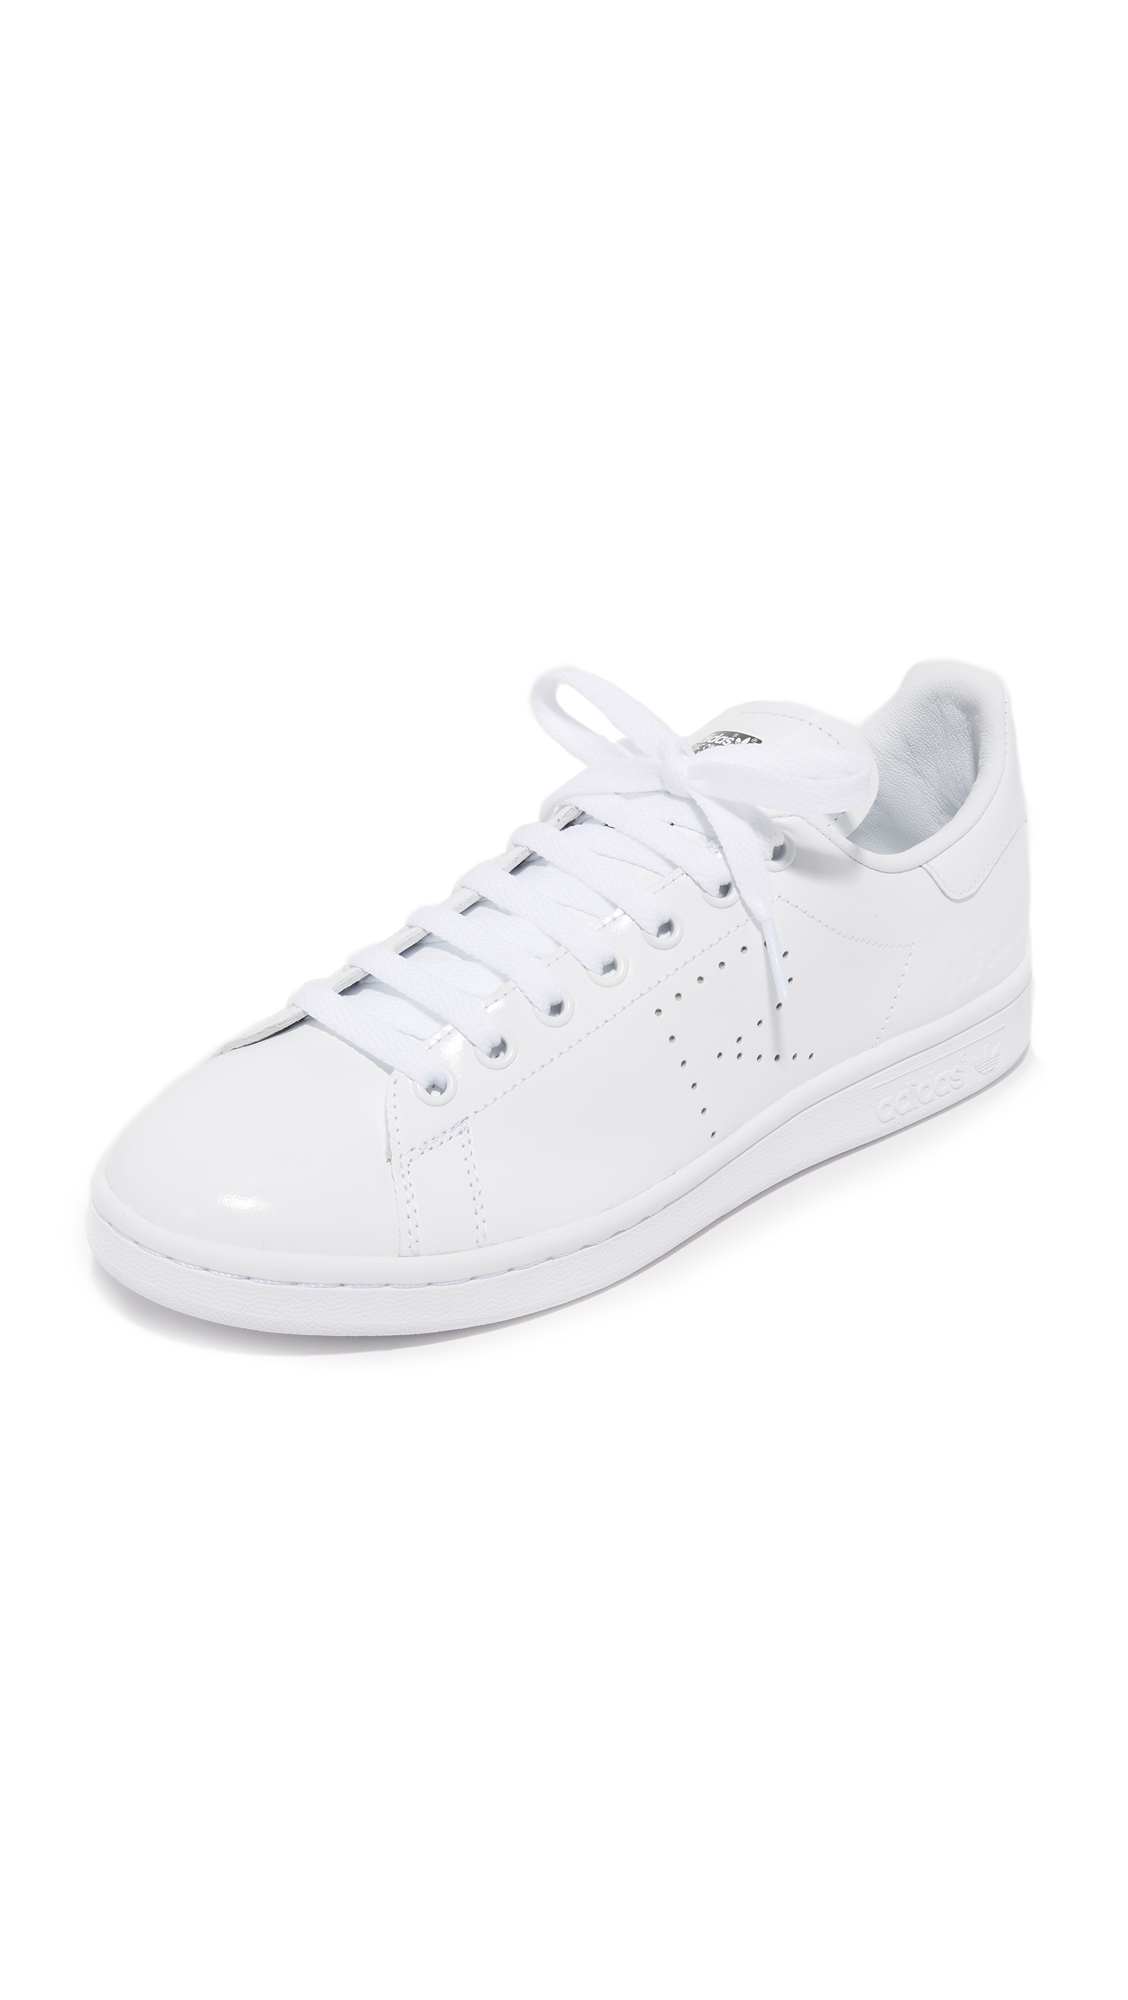 Adidas Raf Simons Stan Smith Sneakers - White/Black/White at Shopbop